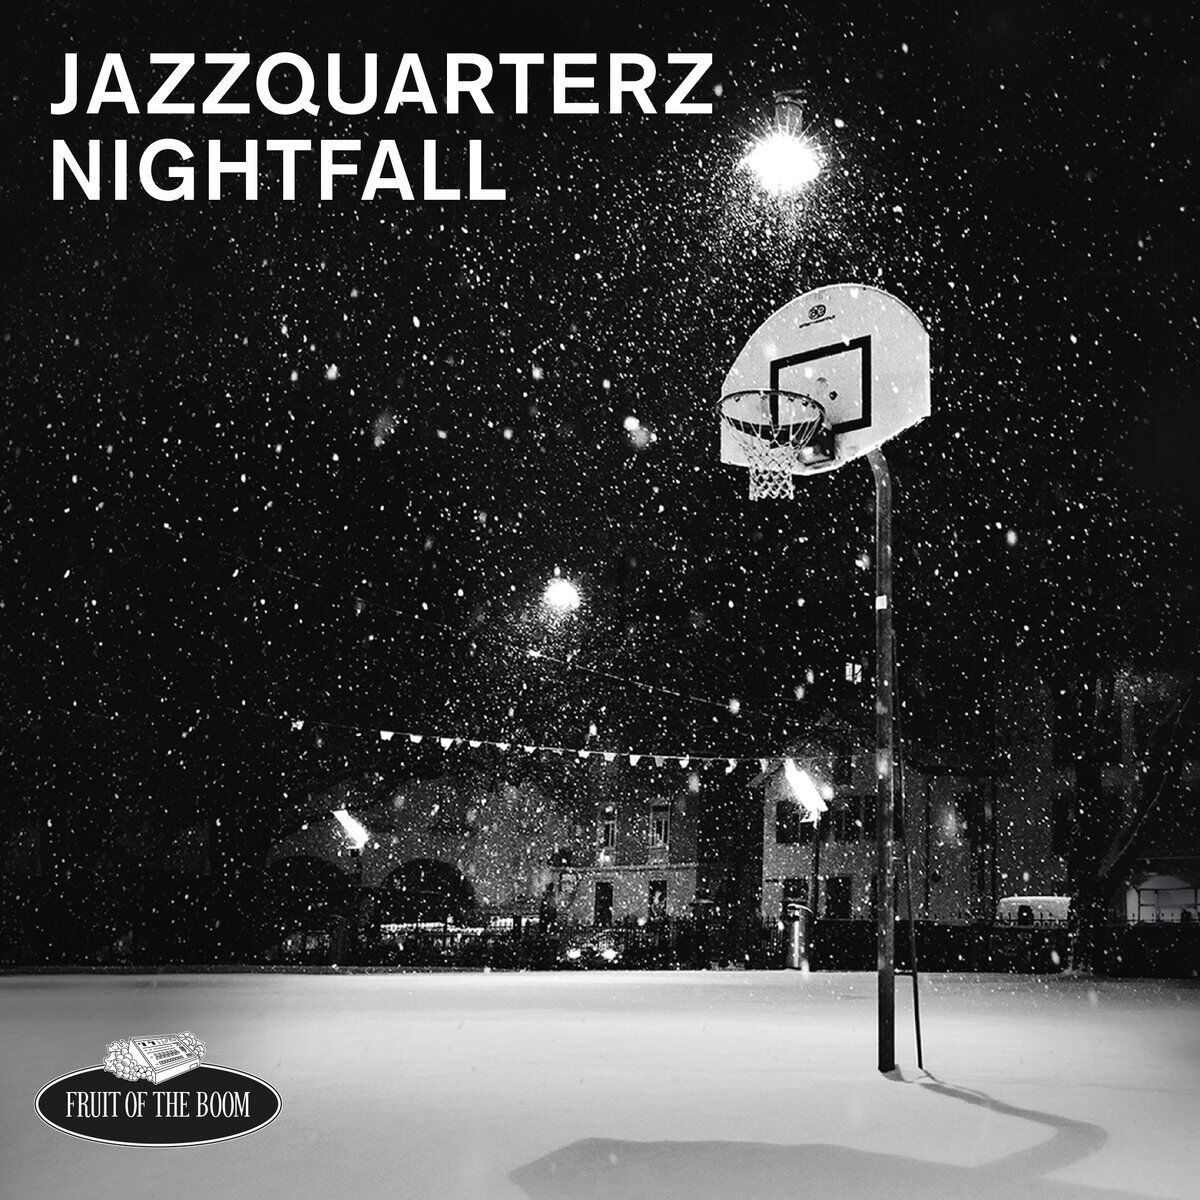 Jazzquarterz - Nightfall